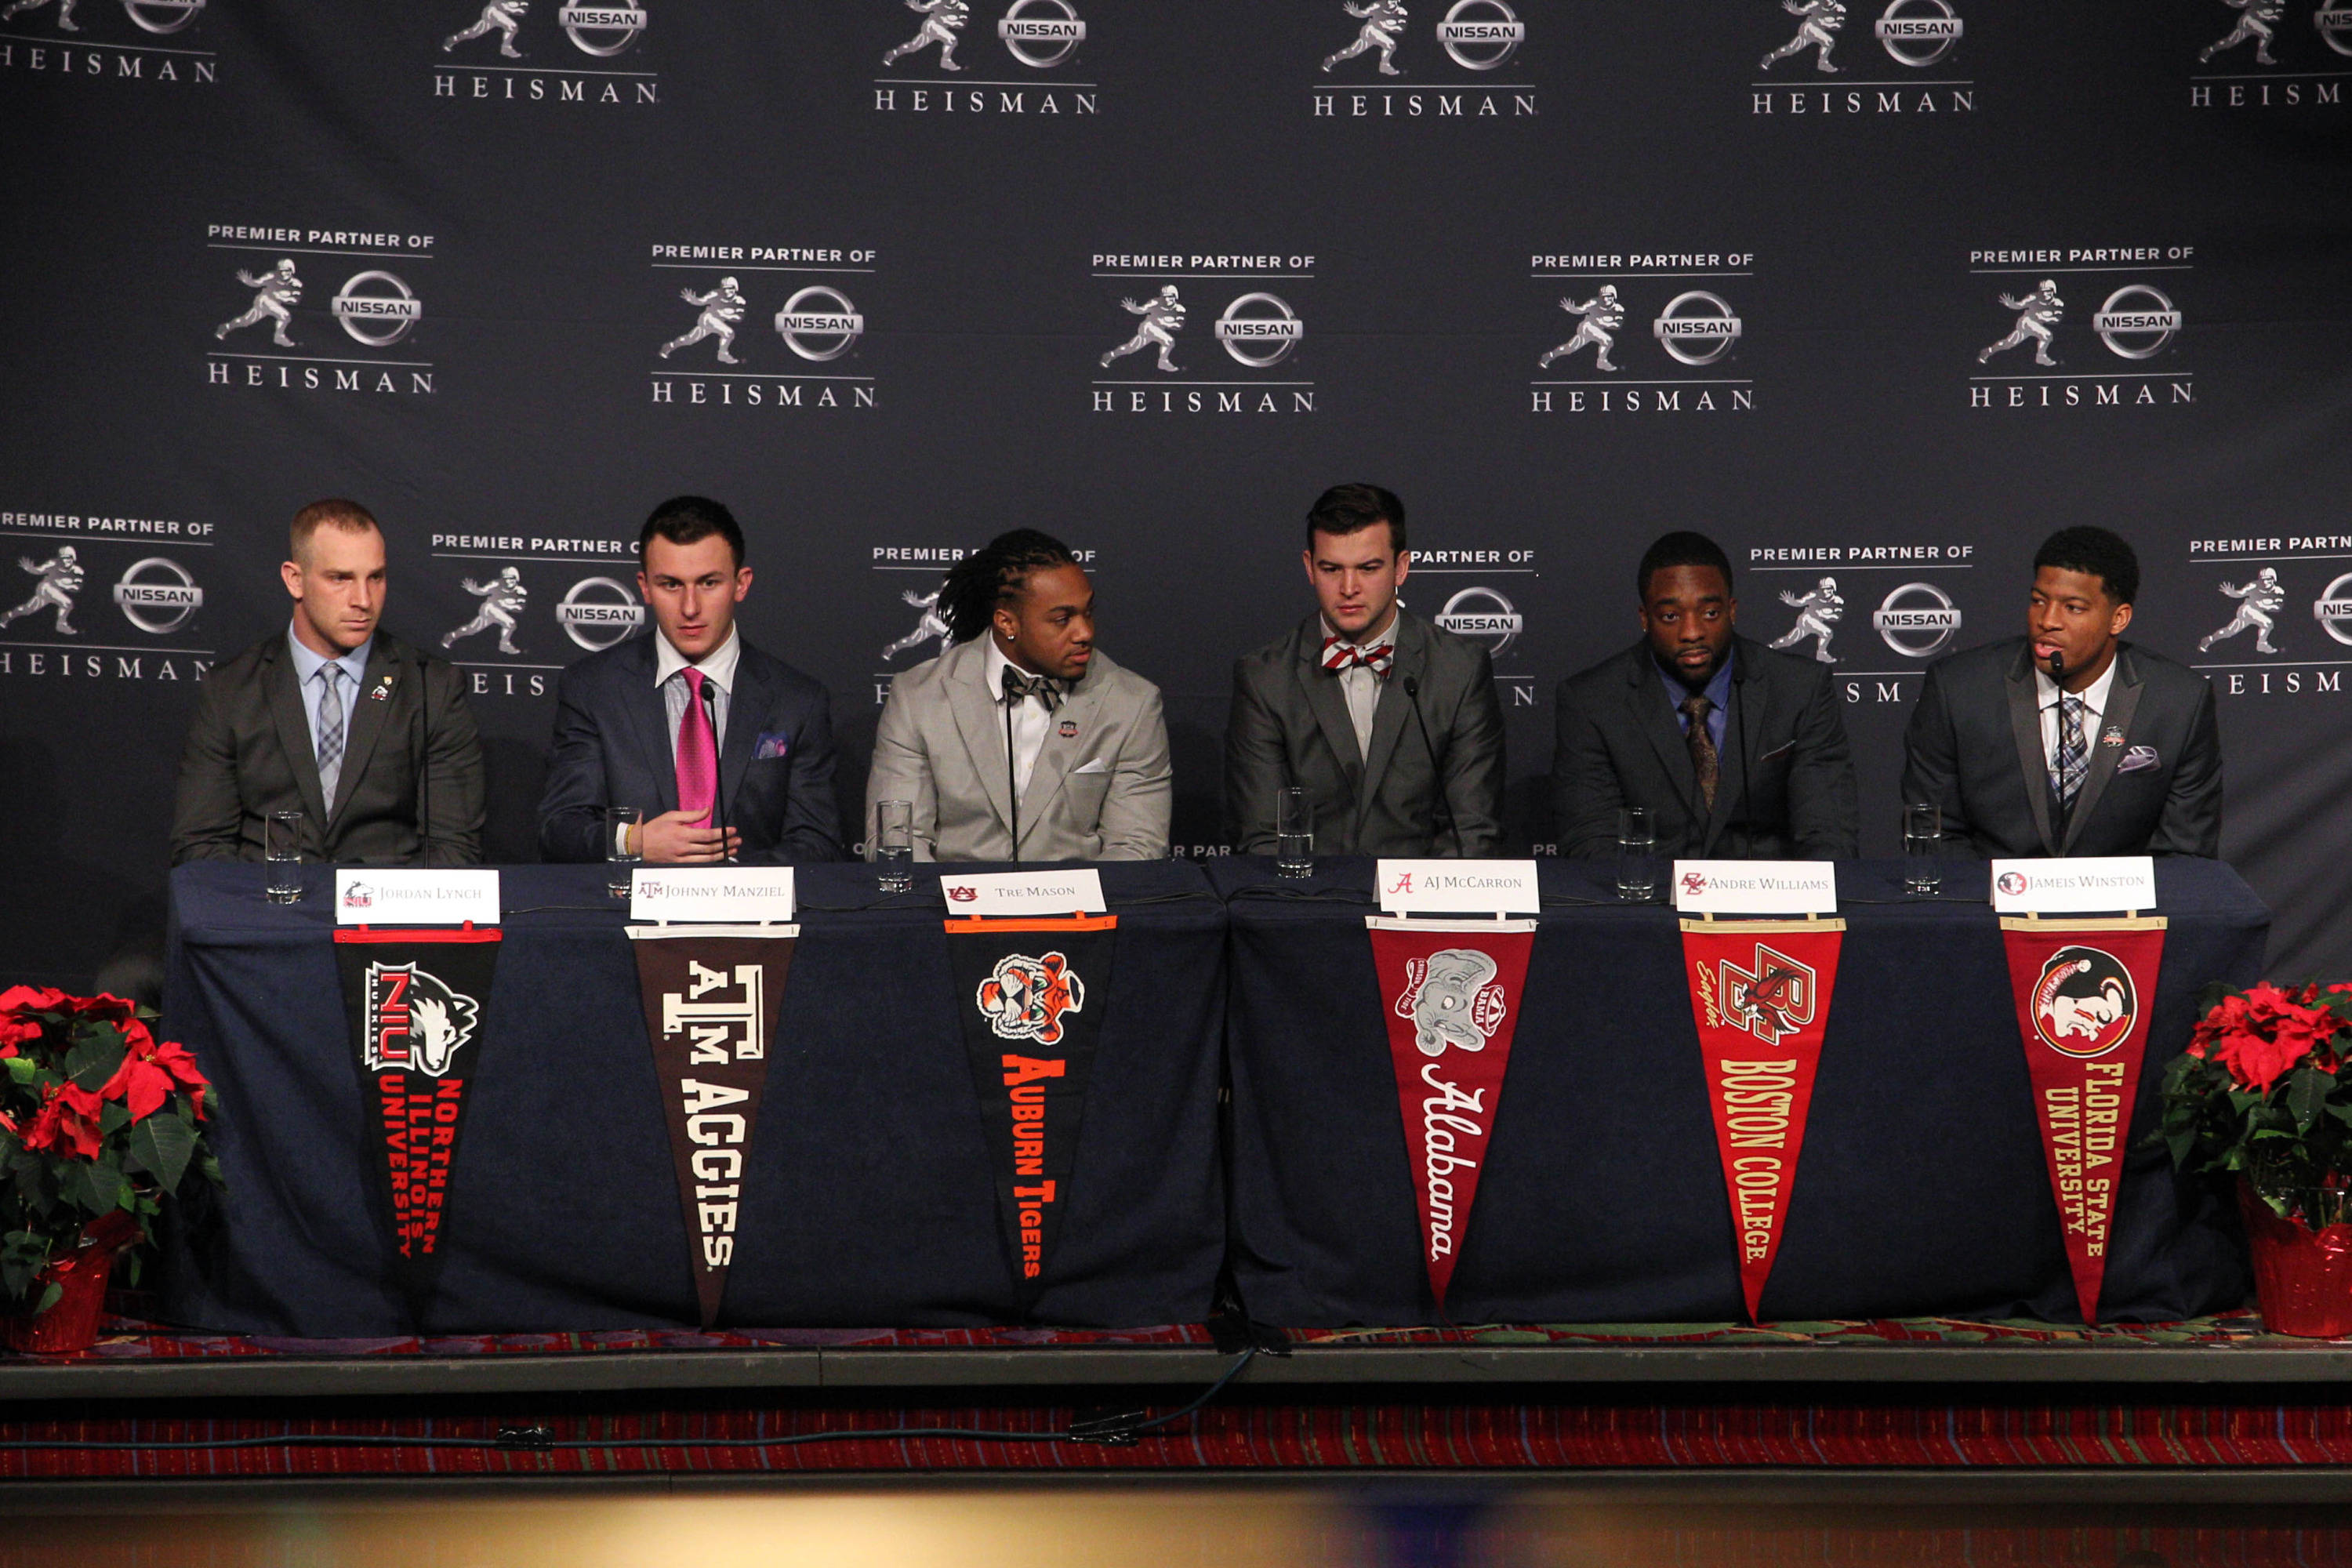 Dec 14, 2013; New York, NY, USA; (From left to right) Nothern Illinois Huskies quarterback Jordan Lynch, and Texas A&M Aggies quarterback Johnny Manziel, and Auburn Tigers running back Tre Mason, and Alabama Crimson Tide quarterback AJ McCarron, and Boston College Eagles running back Andre Williams, and Florida State Seminoles quarterback Jameis Winston talk to the media during a press conference before the announcement of the 2013 Heisman Trophy winner at the New York Marriott Marquis Times